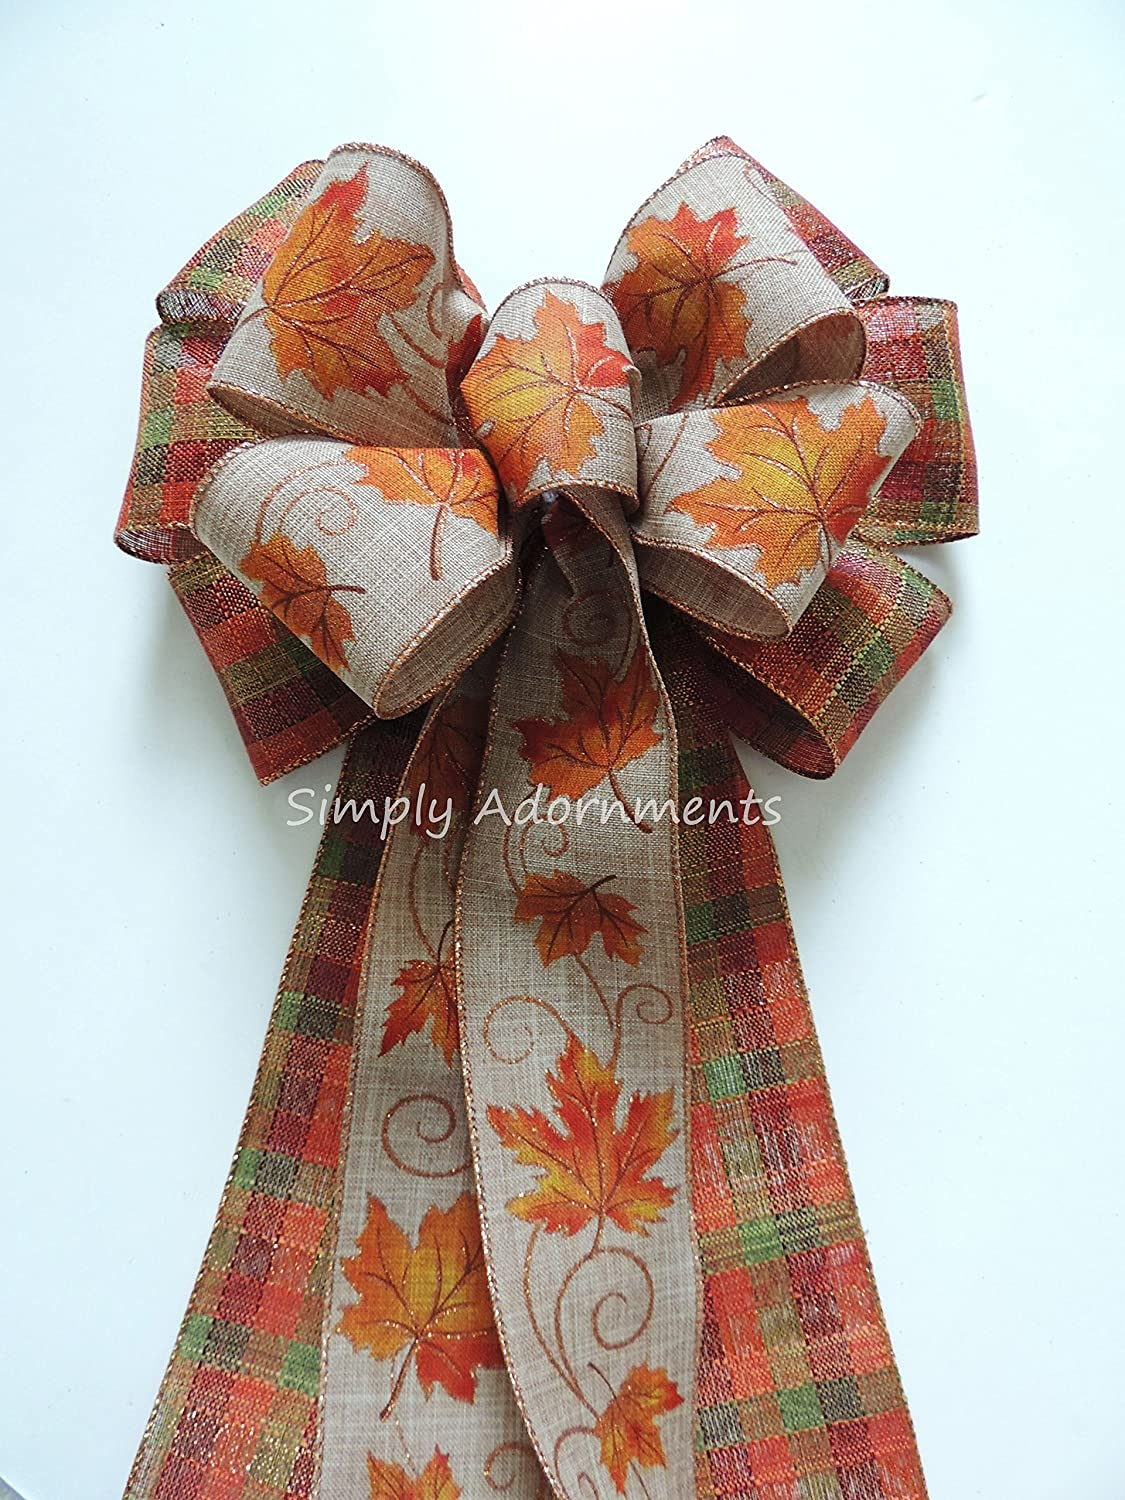 Burnt Orange Fall Leaves Bow Thanksgiving wreath Bow Orange Brown Fall Door Wreath Bow Orange Brown fall Wired Ribbon Bow Fall Plaid Door Hanger Bow